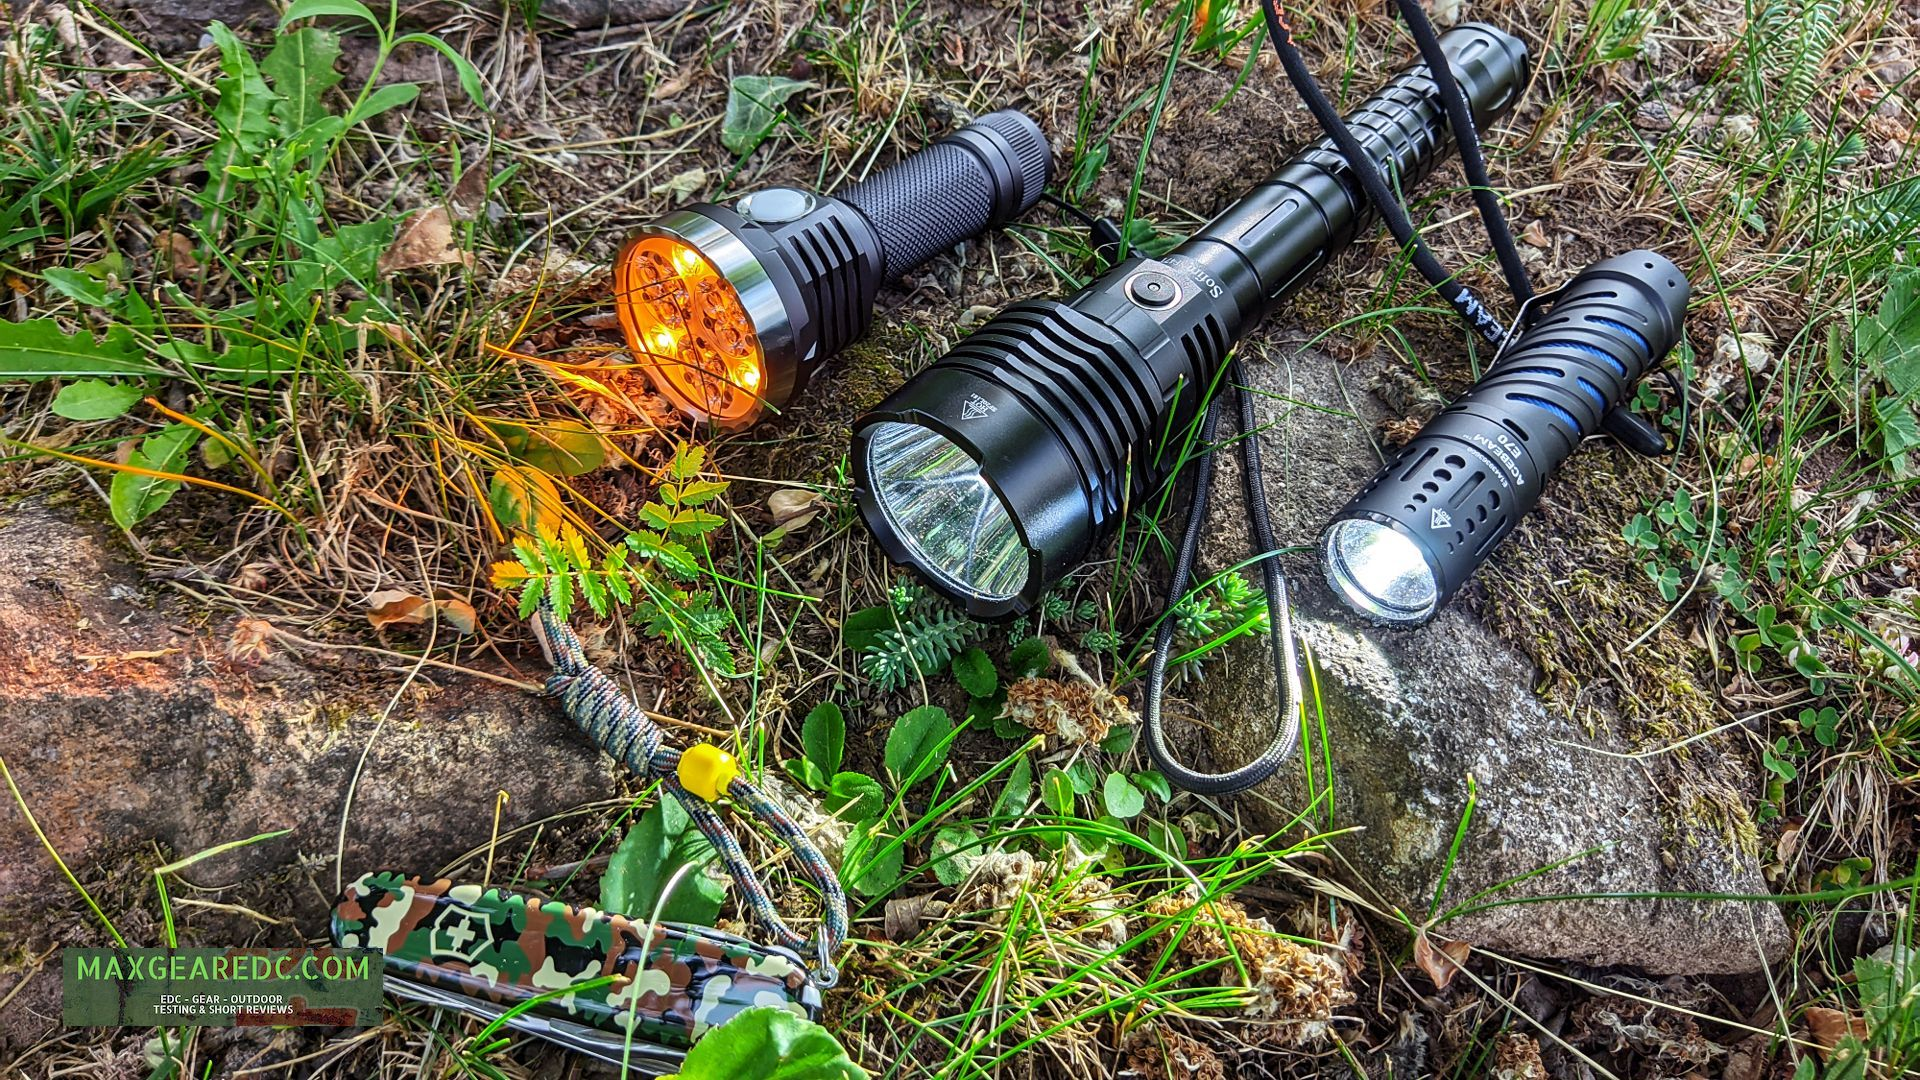 Sofirn_SF47W_flashlight_Review_21700_thrower_maxgearedc.com_EDC_GEAR_OUTDOOR_TESTING_and_SHORT_REVIEWS_15